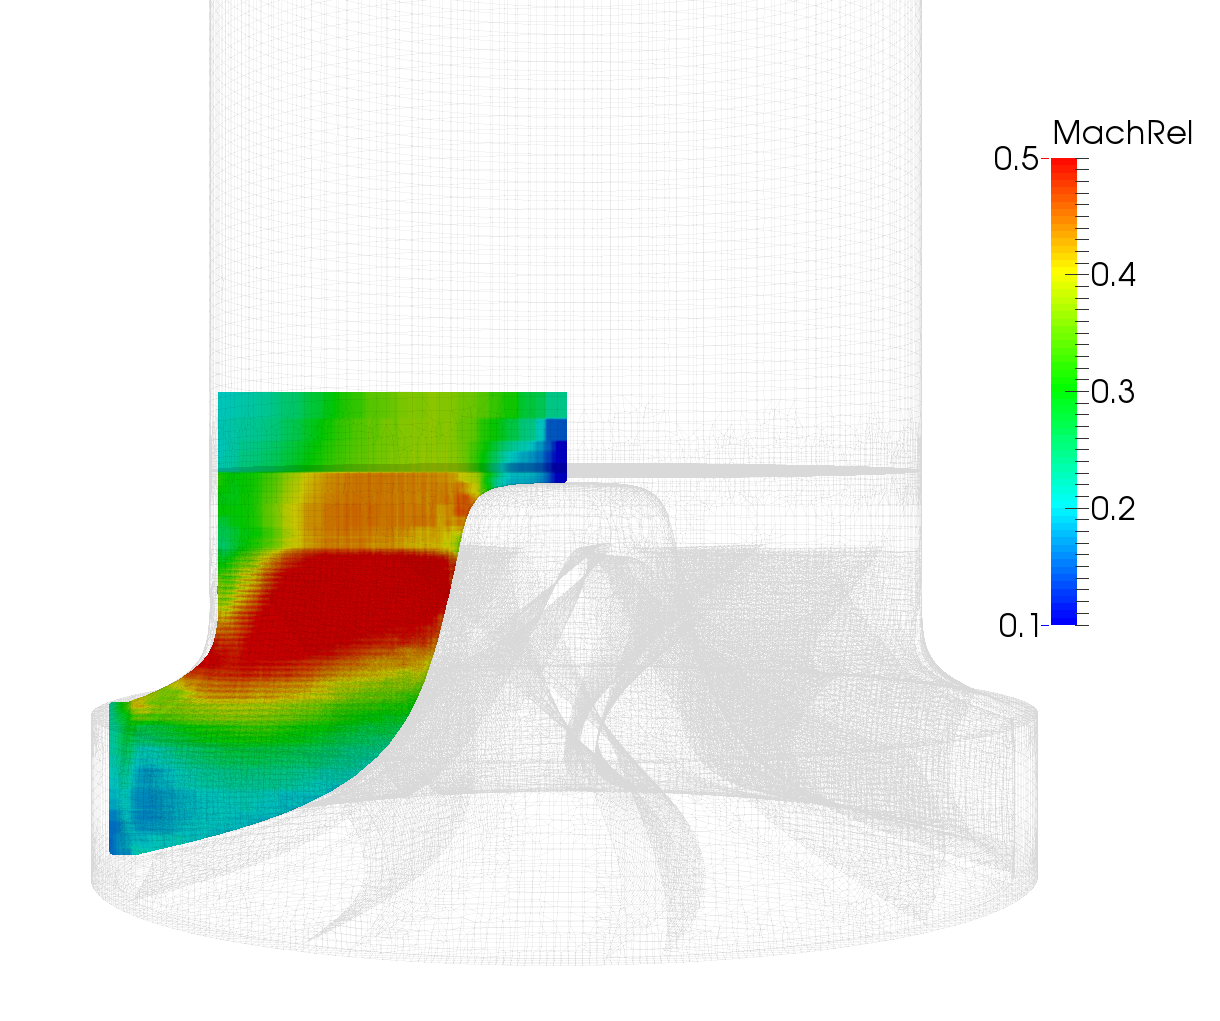 CFturbo-TurbomachineryCFD-radial-turbine-impeller-mach-relative-meridional-average